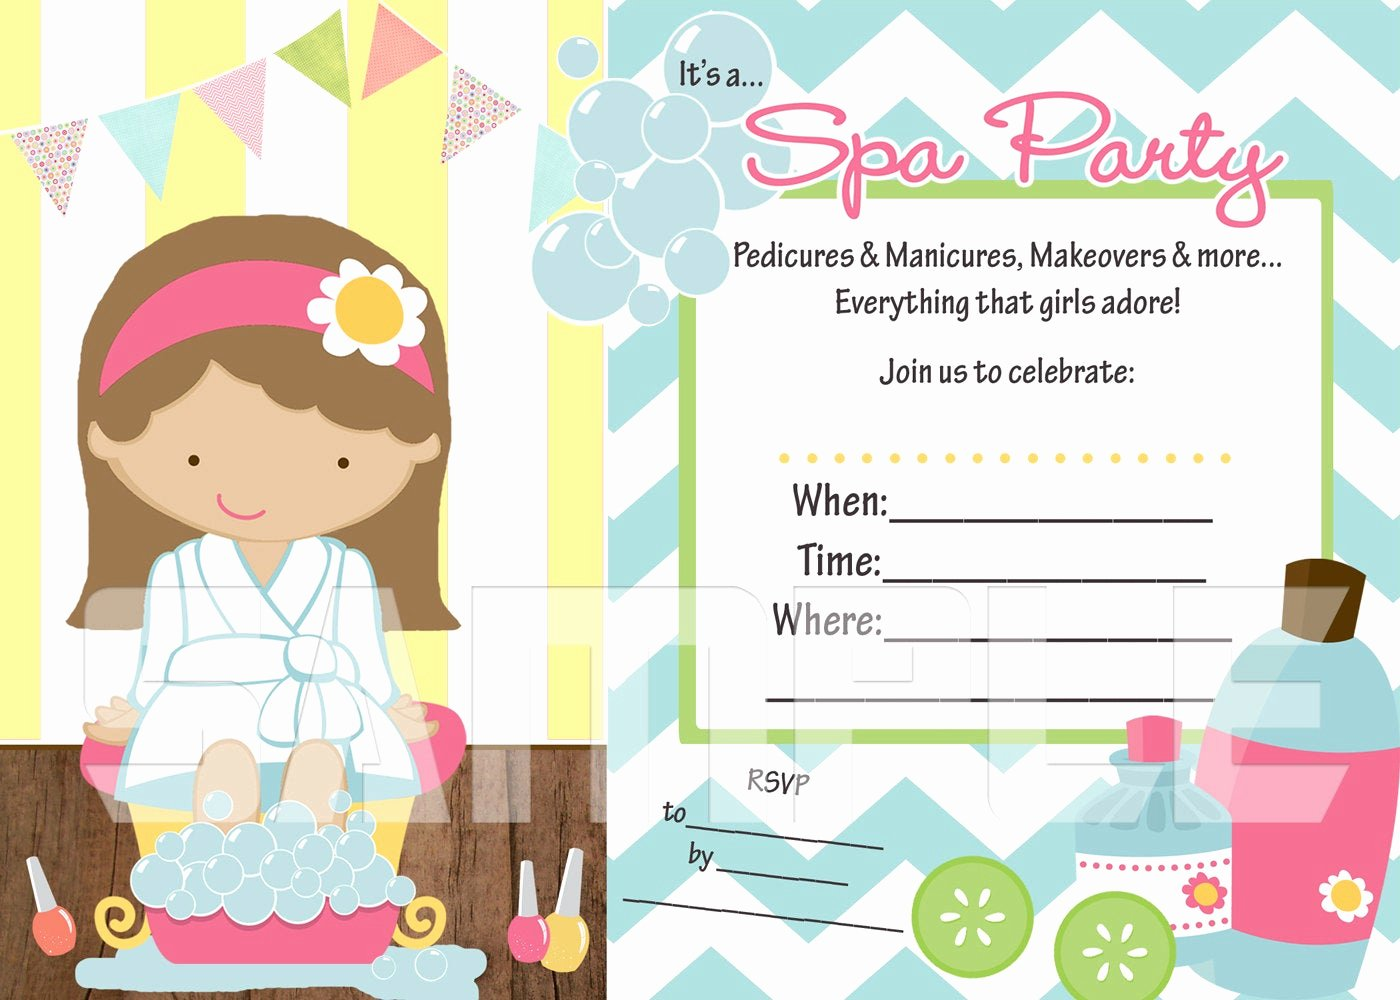 Free Spa Party Invitations Unique Fill In the Blank Spa Party Printable Invitation by